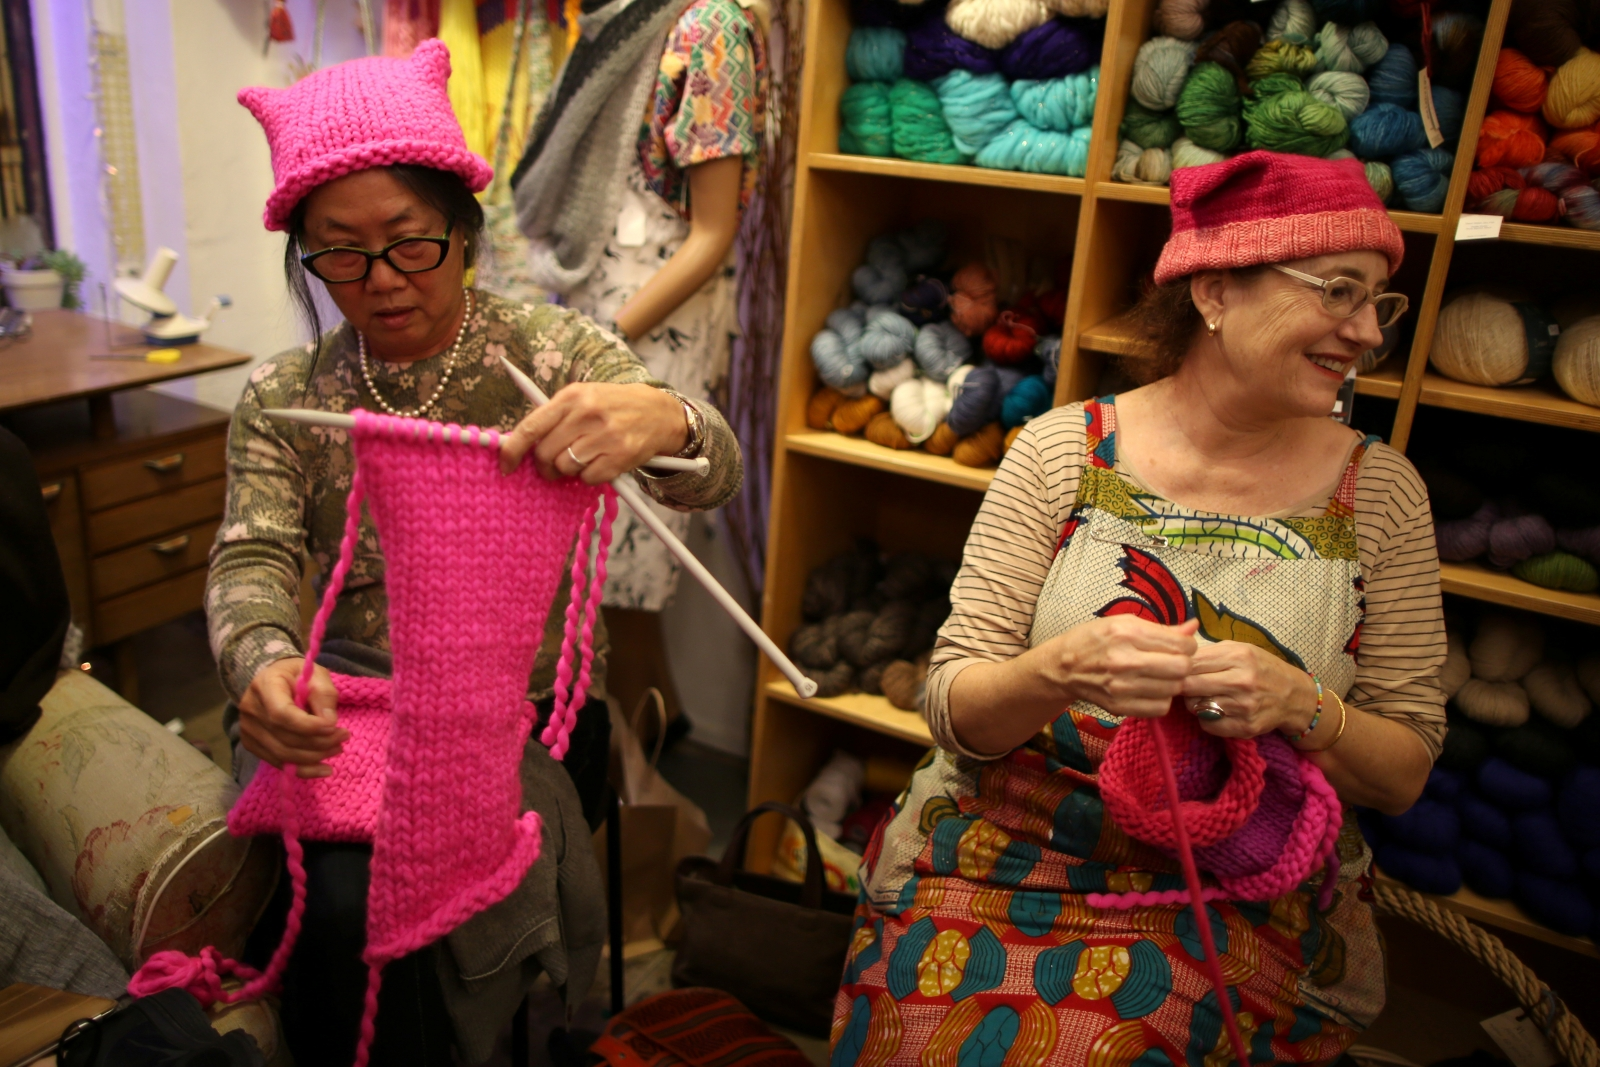 Knitters provide pink hats for protesters in the women's march